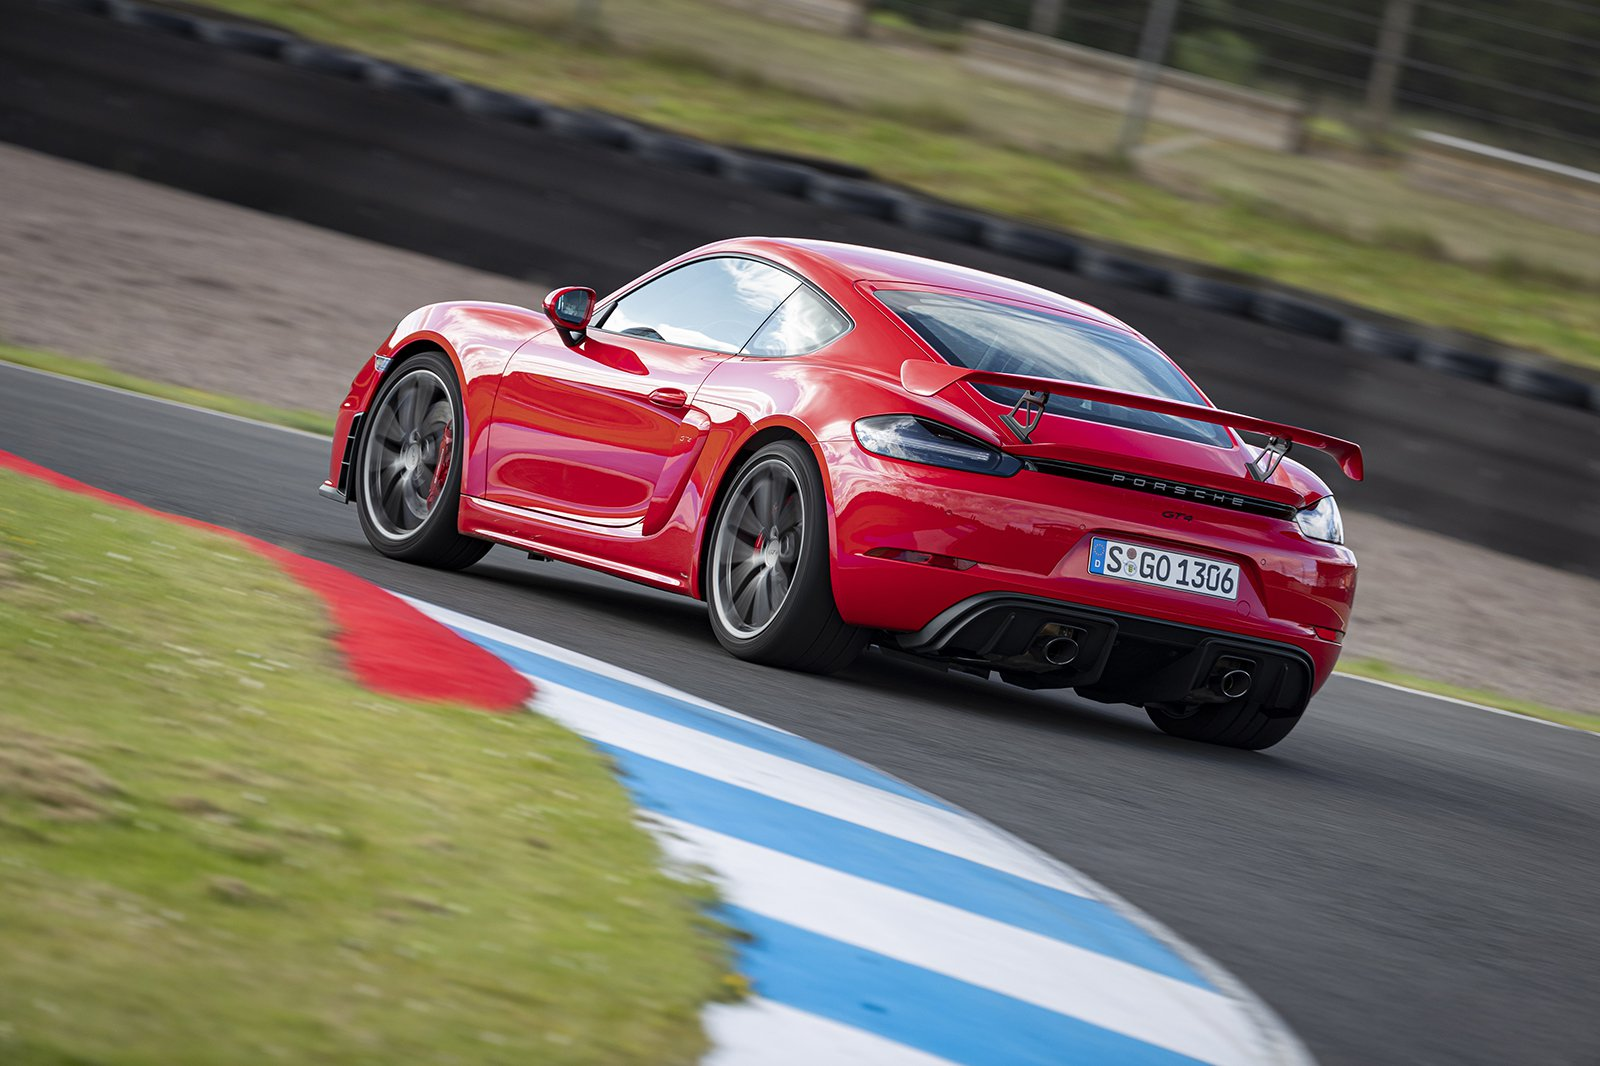 2019 Porsche 718 Cayman GT4 rear cornering